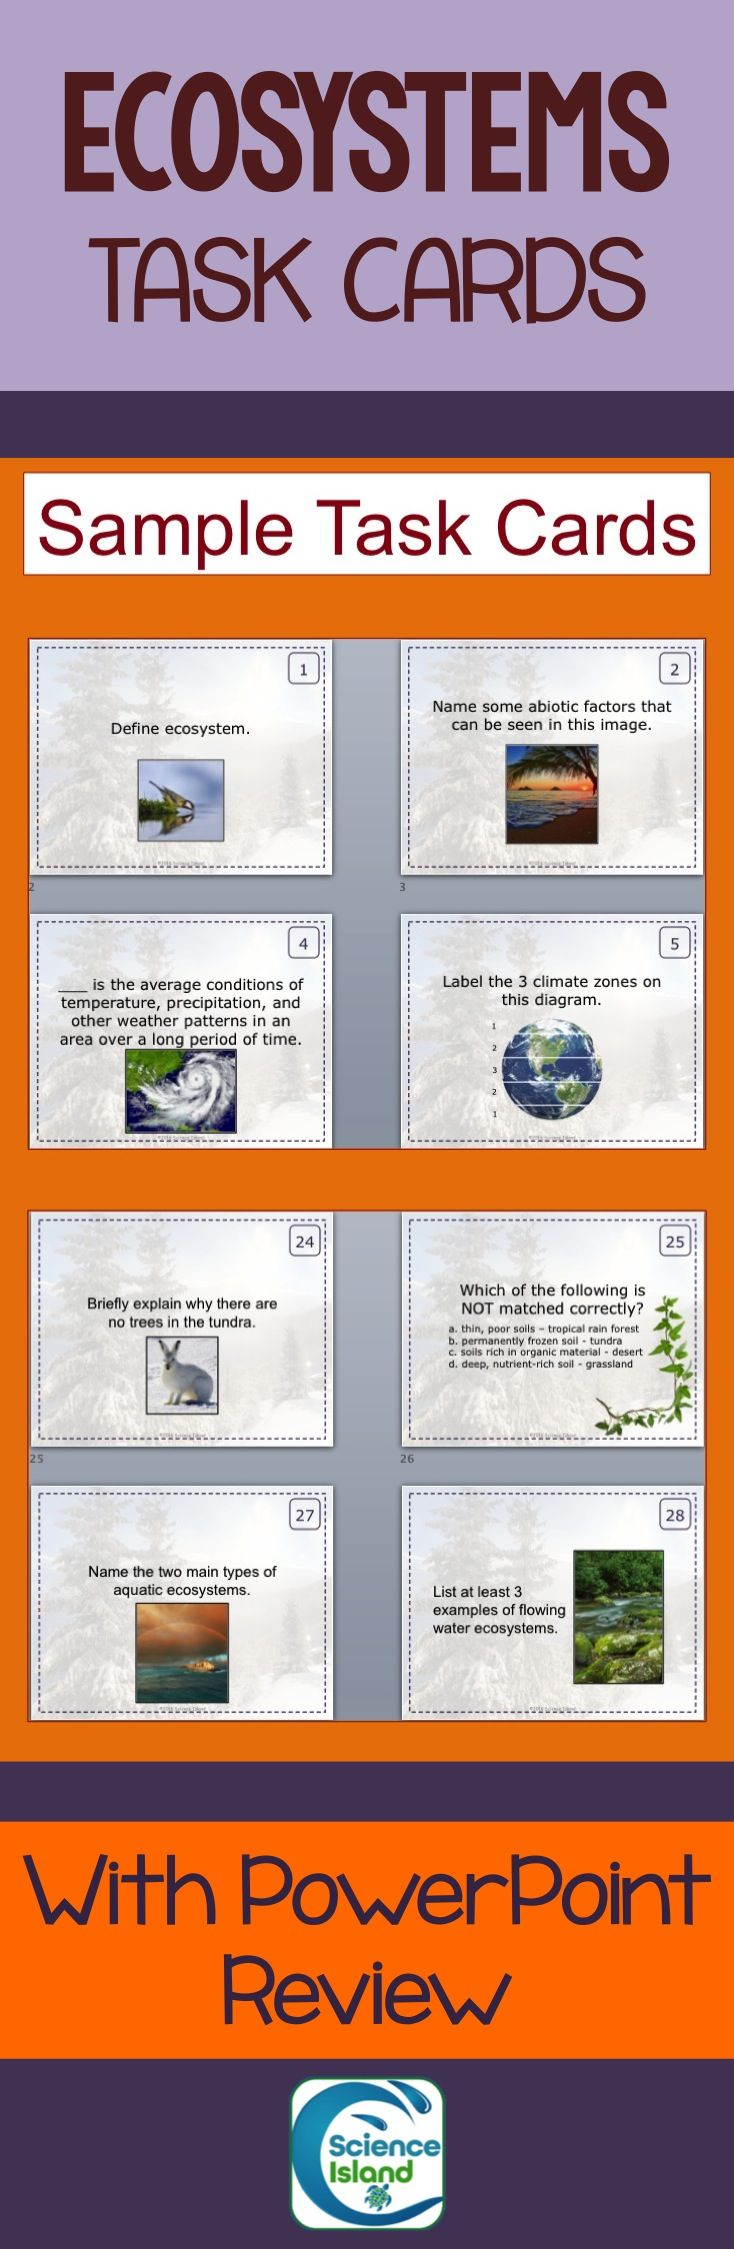 35 Task Cards cover terrestrial and aquatic biomes for high school Biology. Comes with  PowerPoint Review, student answer sheet, and teacher answer key.